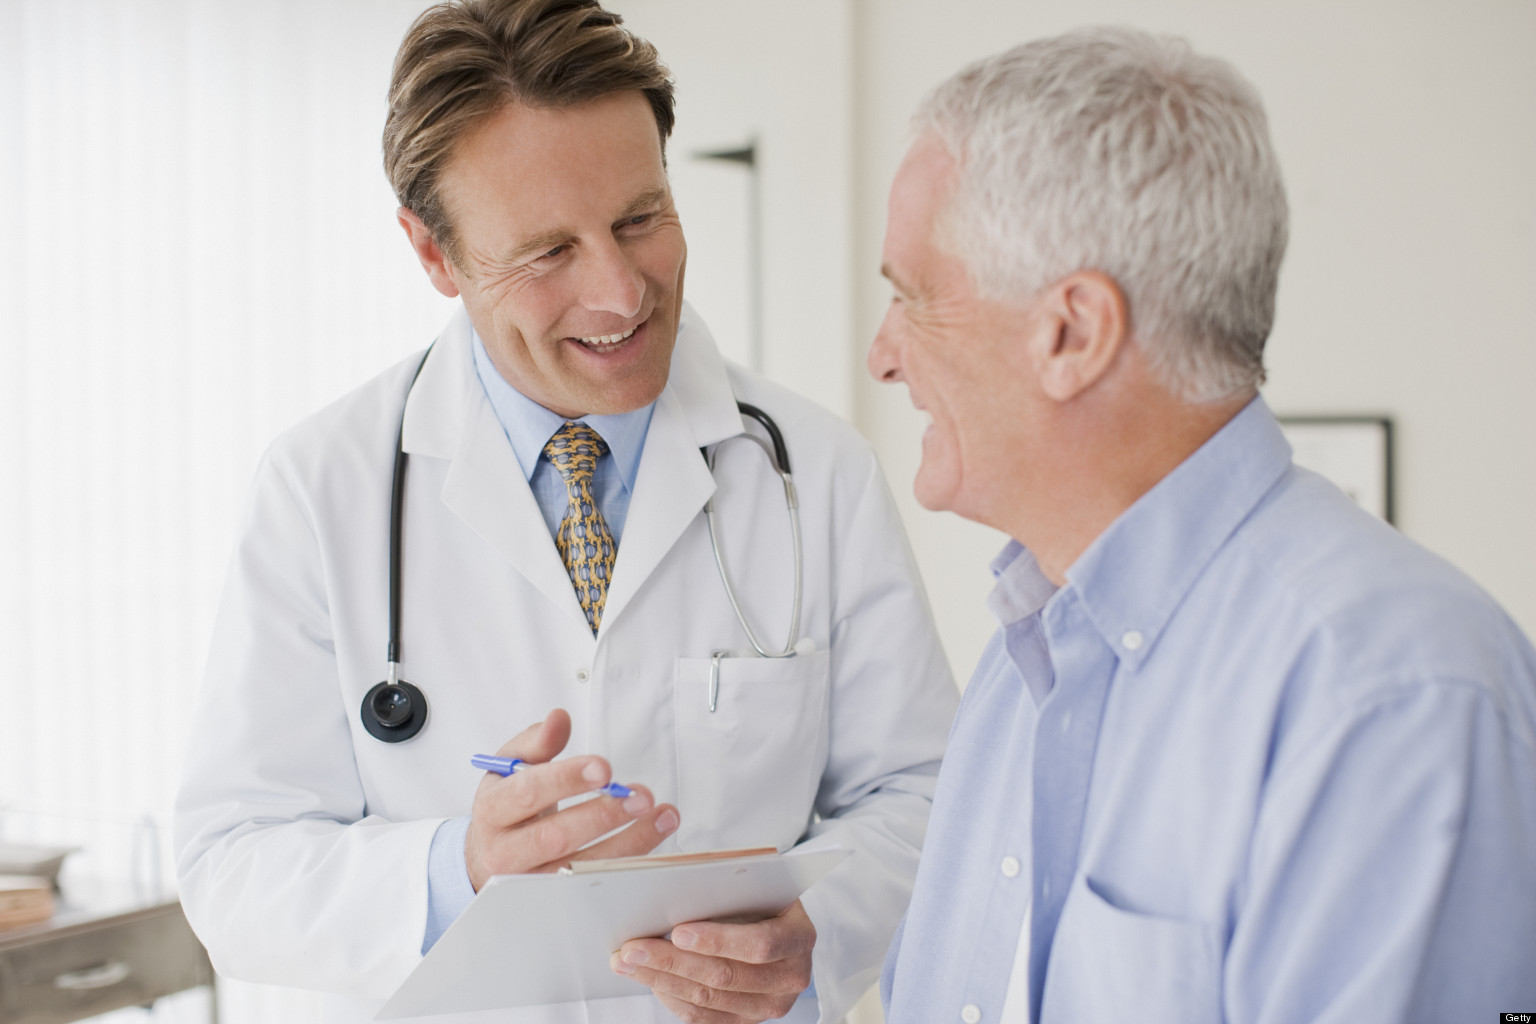 Doctor talking with patient in doctors office